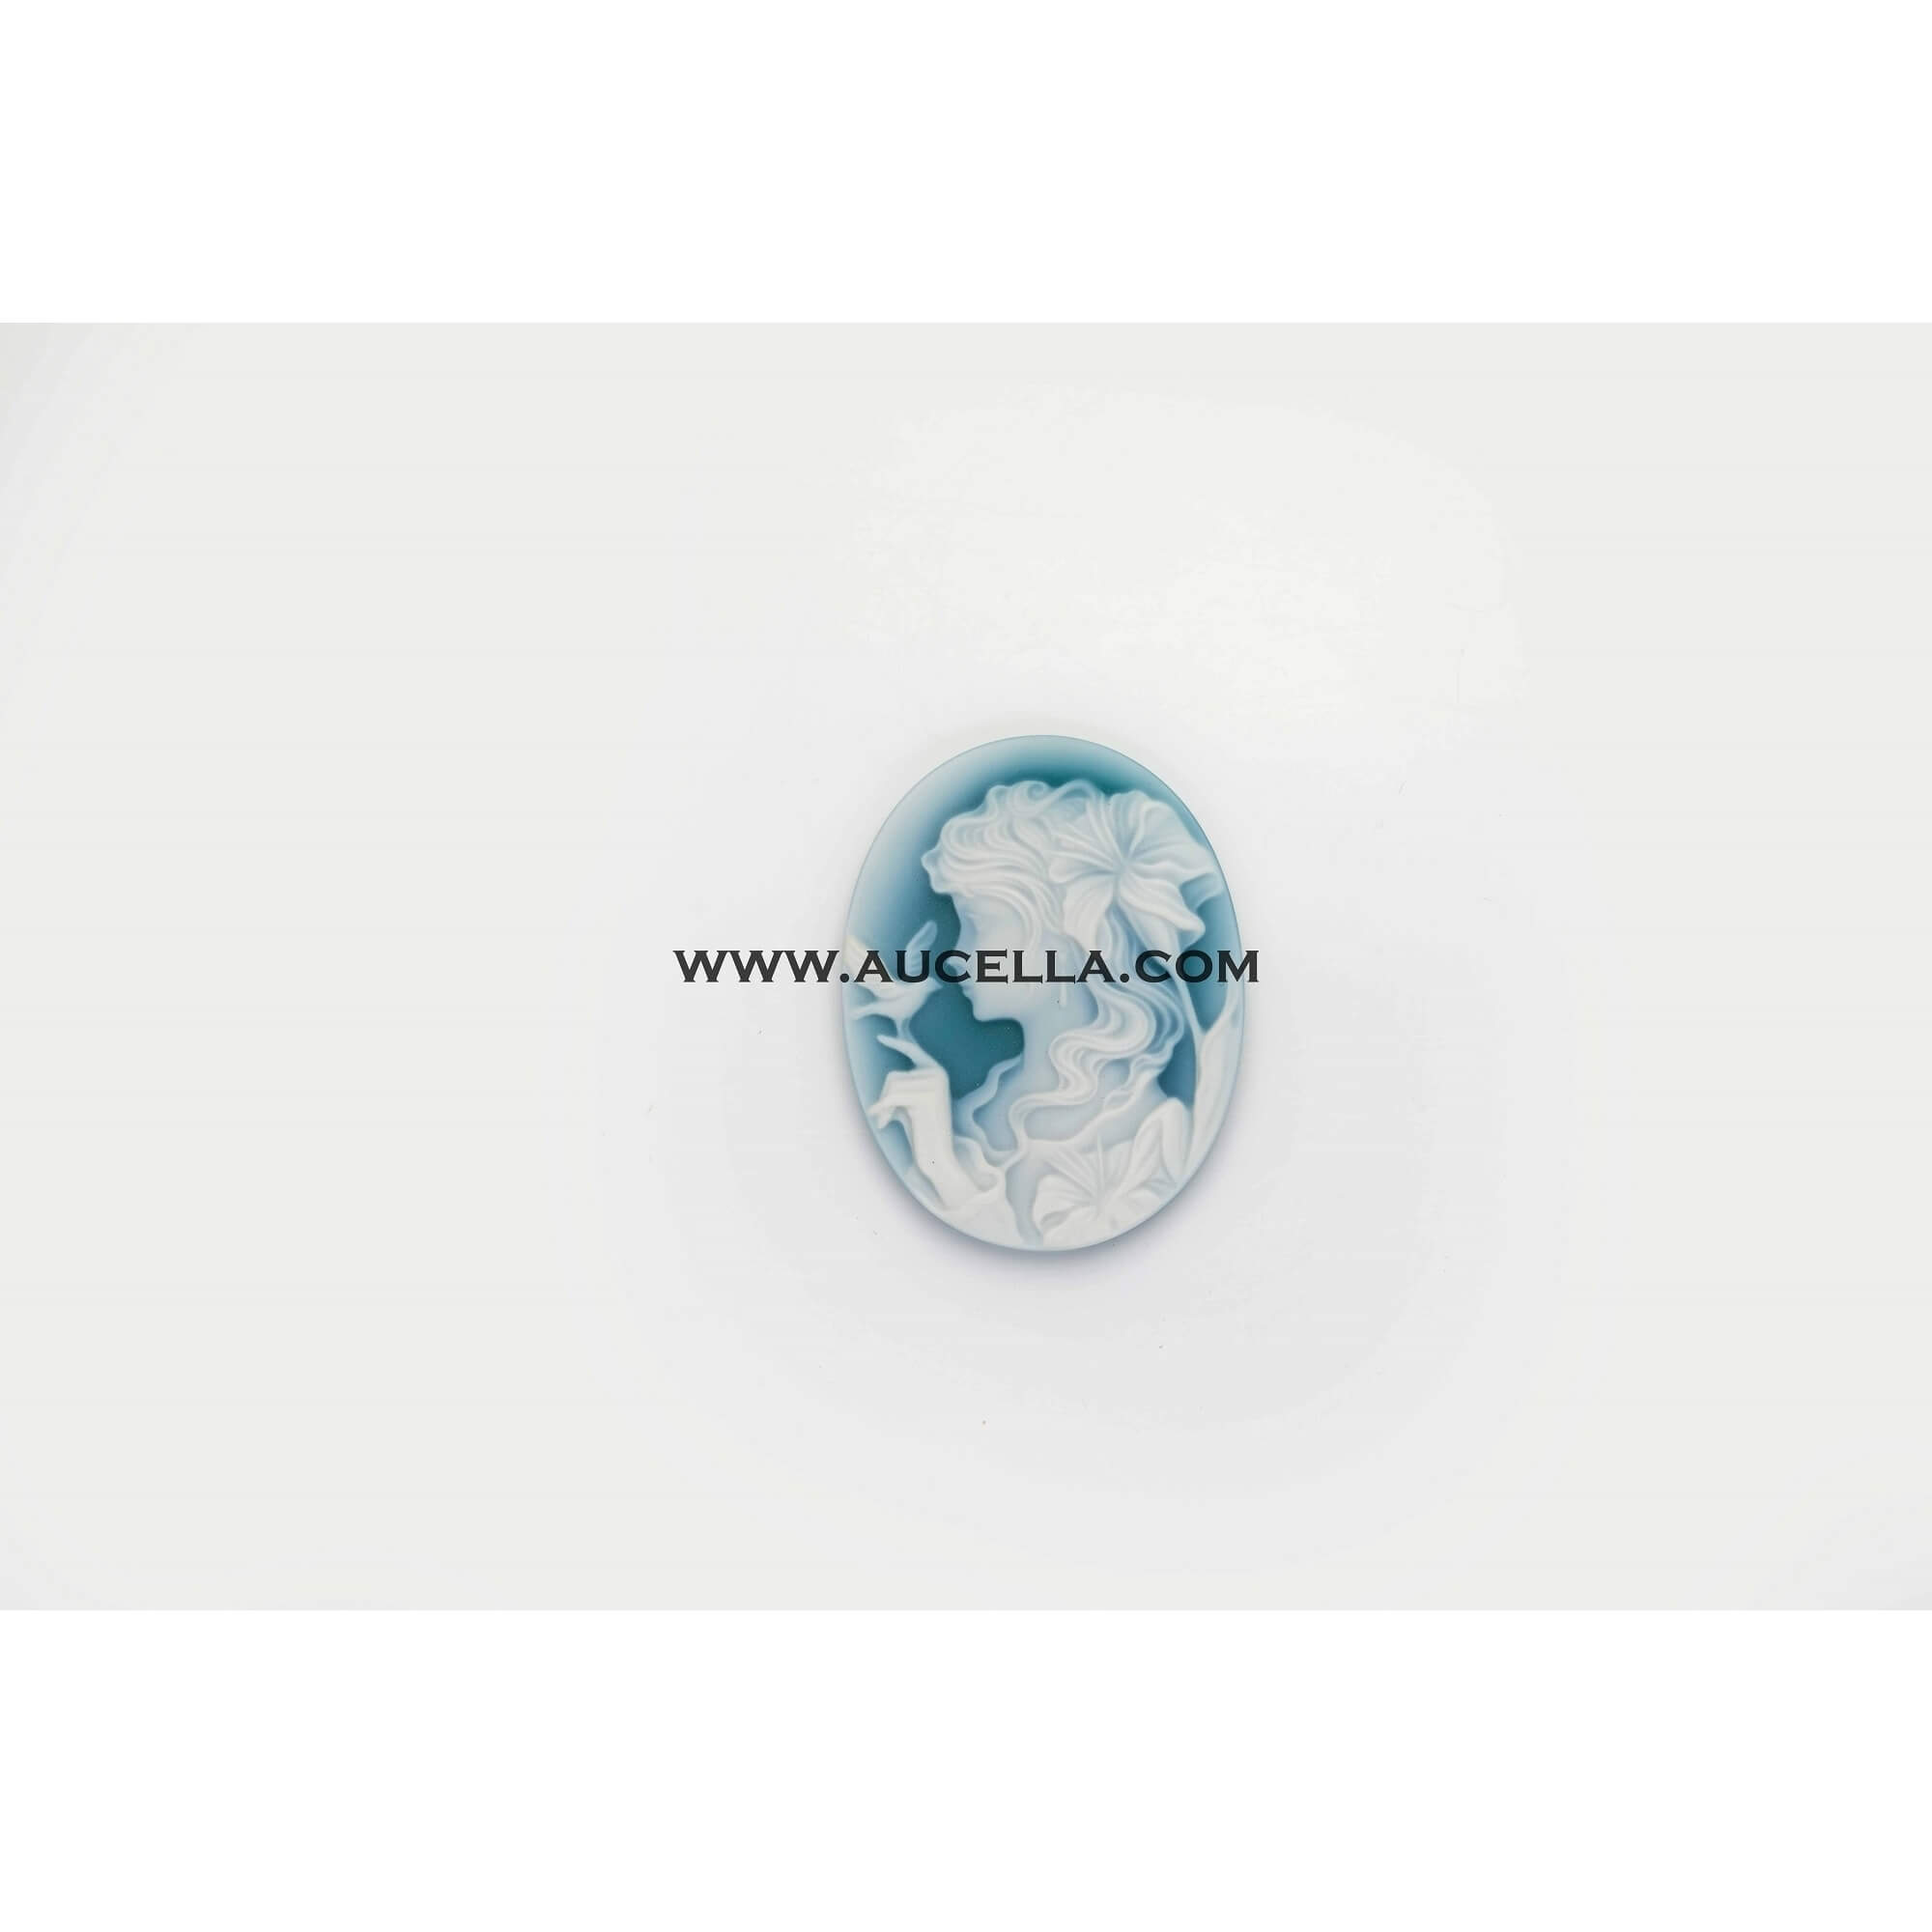 Agate cameo 45 mm